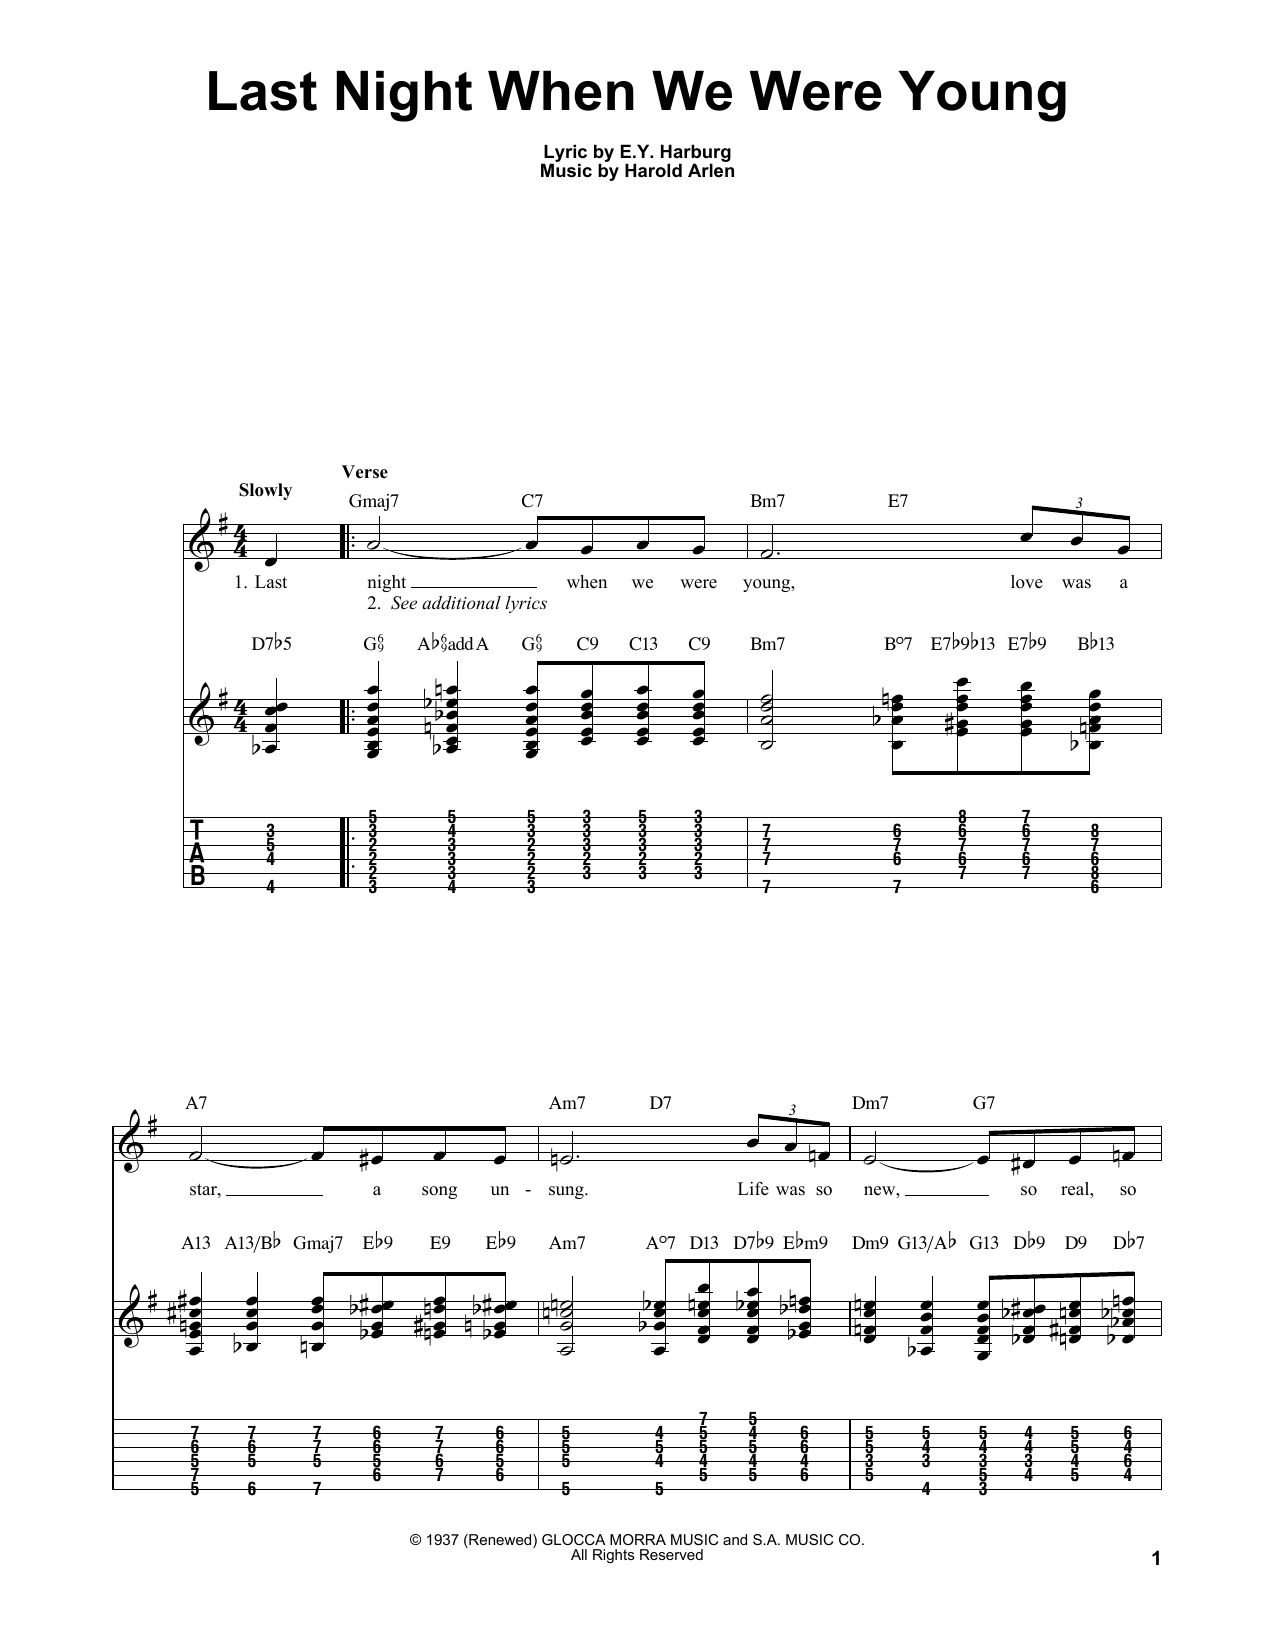 When We Were Young Chords Kenny Burrell Last Night When We Were Young Sheet Music Notes Chords Download Printable Easy Guitar Tab Sku 28915